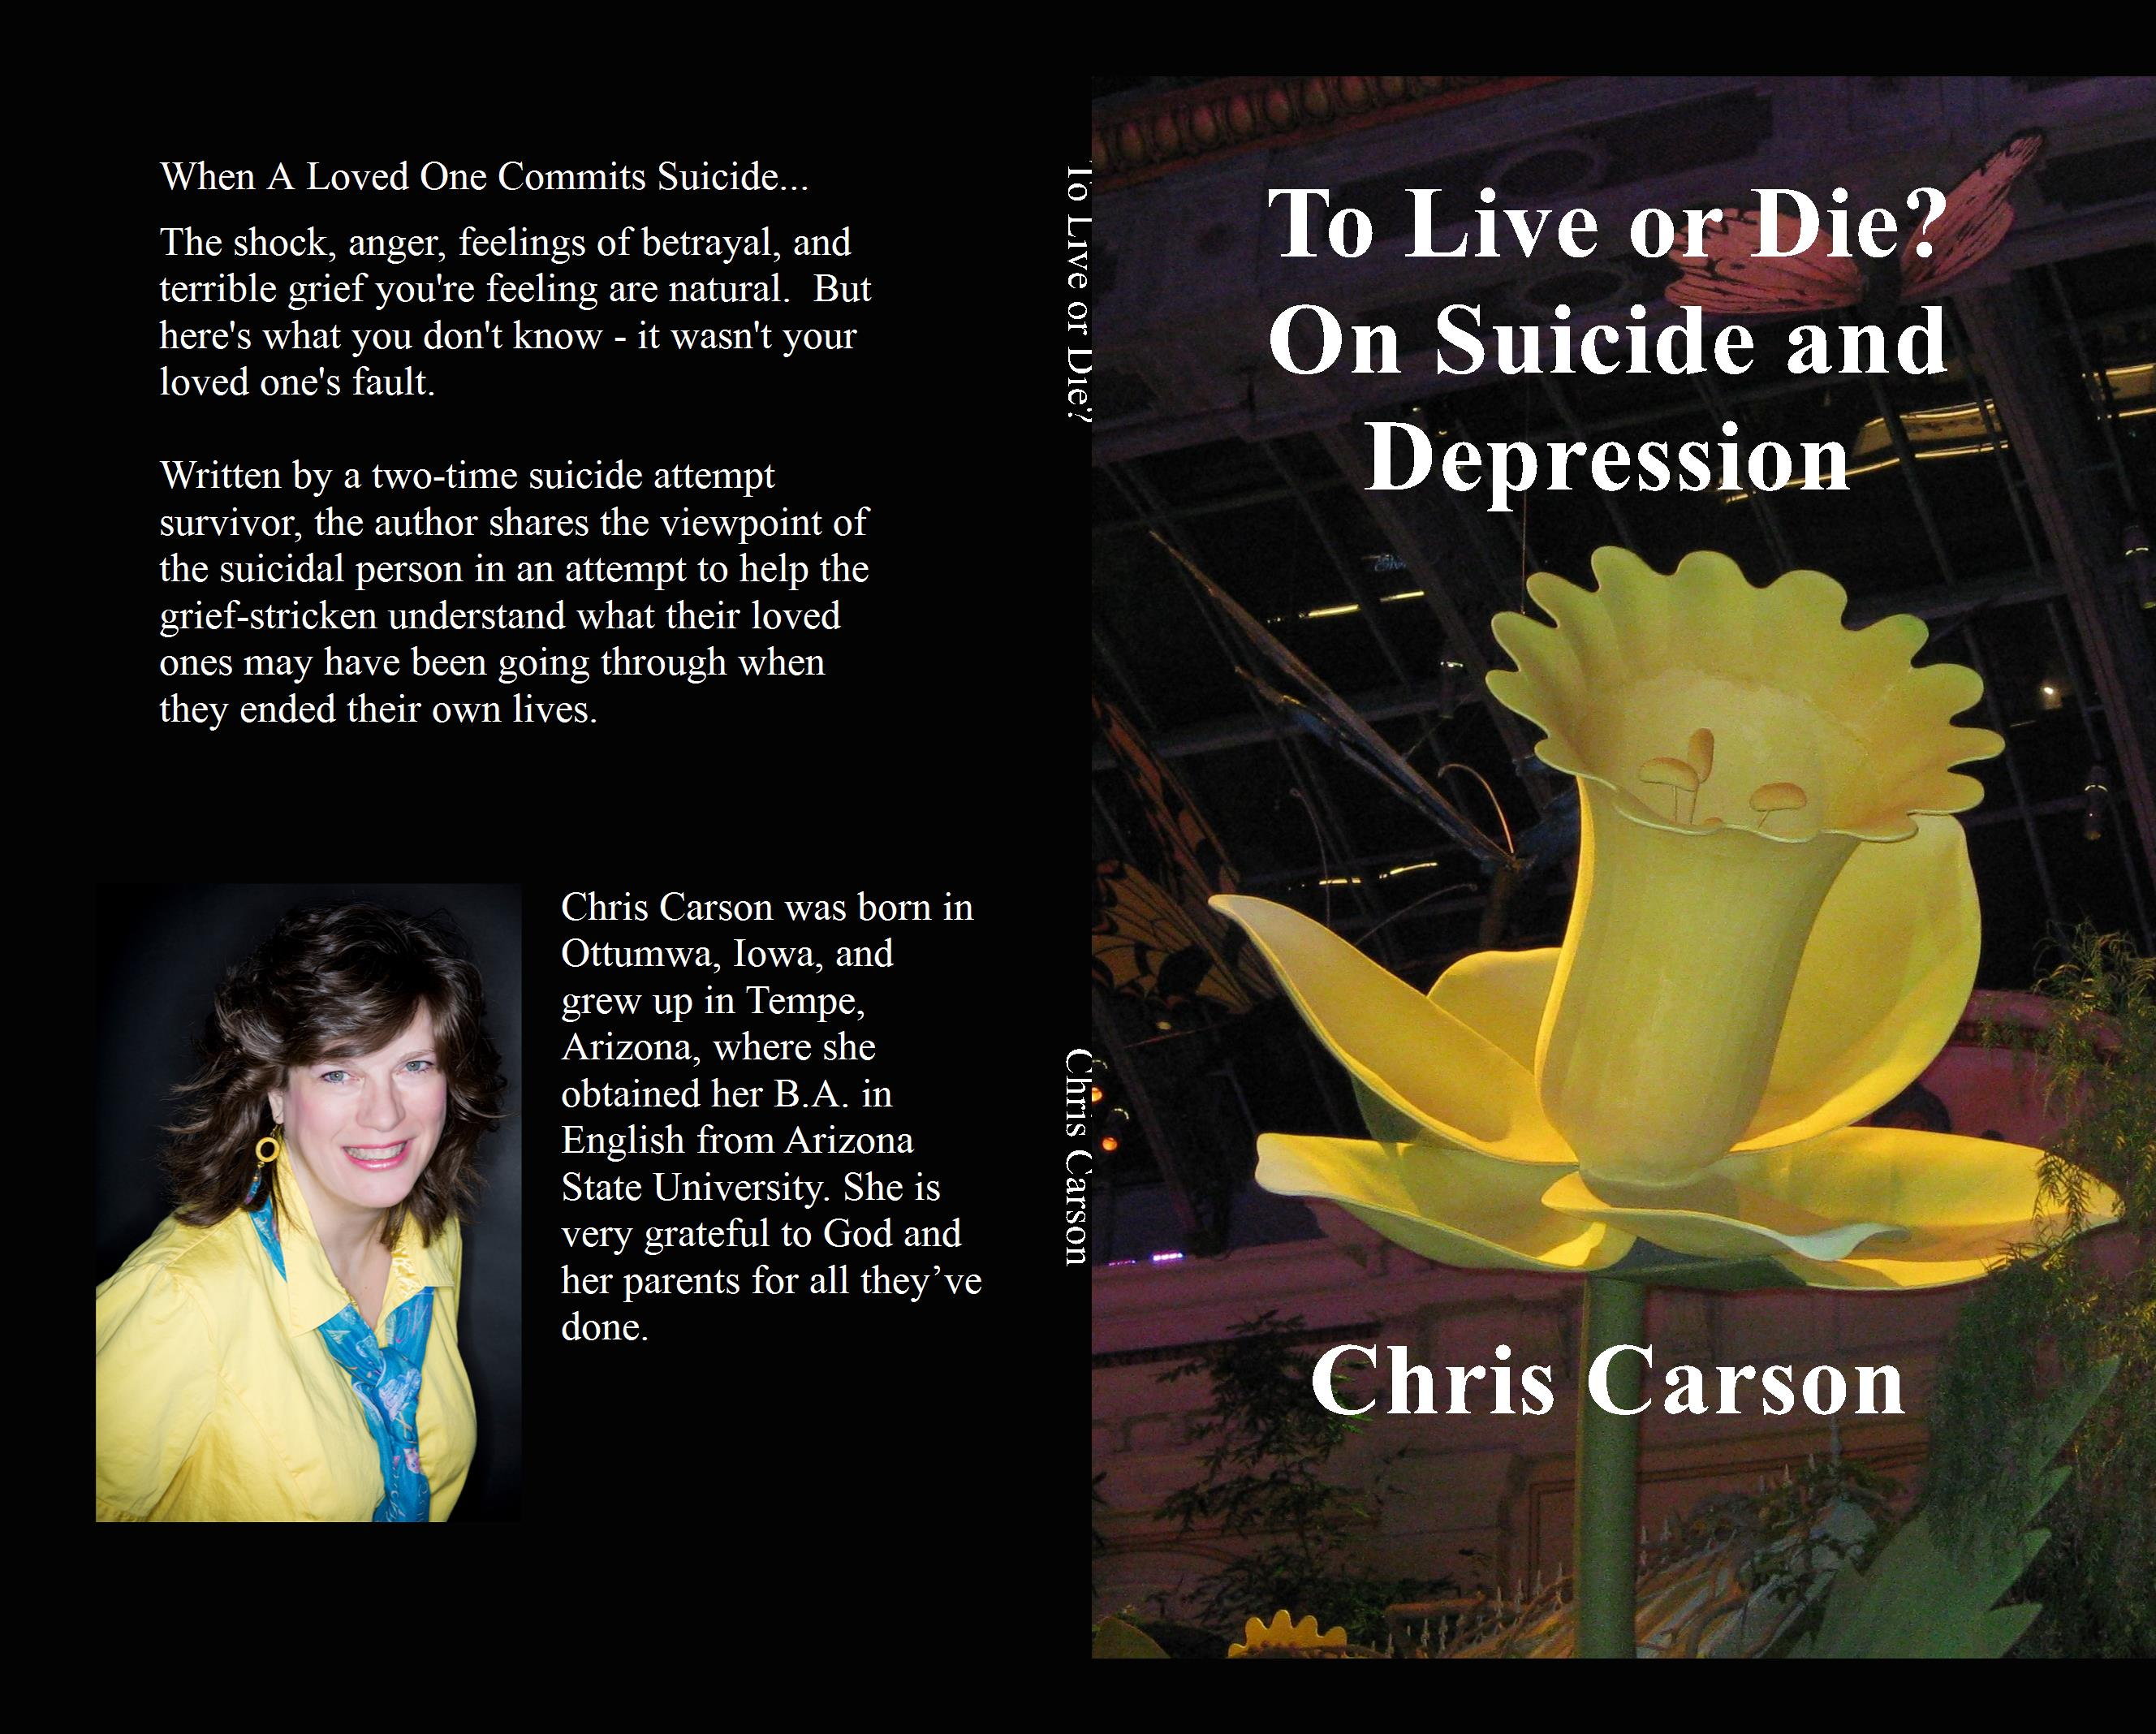 To Live or Die? On Suicide and Depression cover image